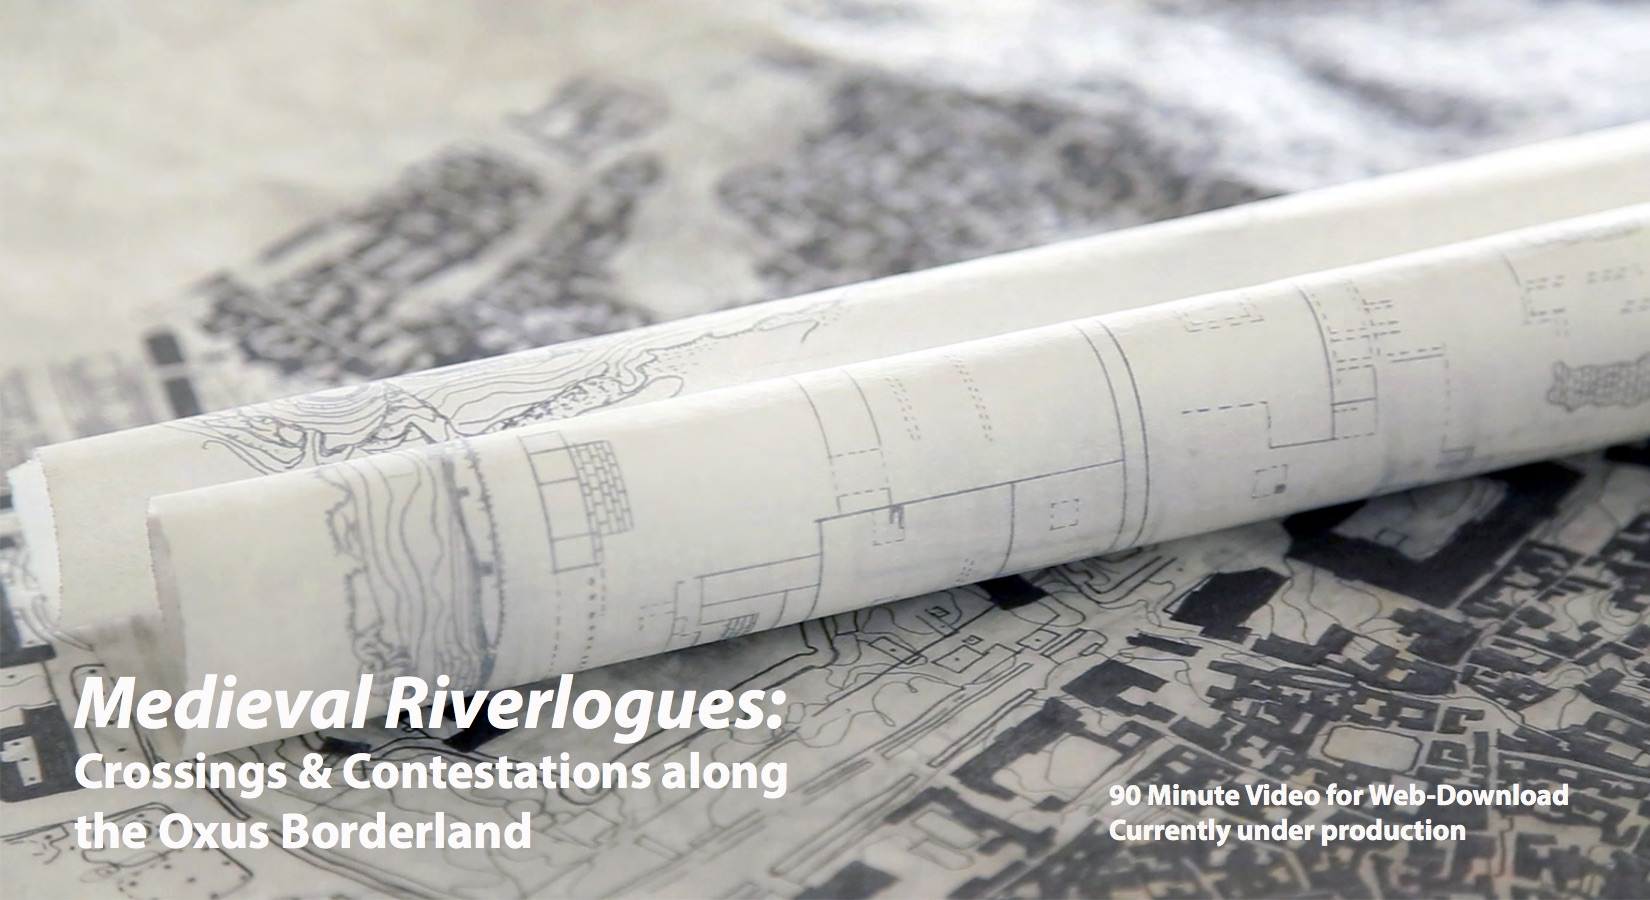 Medival Riverlogues Video Project (Image © Manu Sobti)